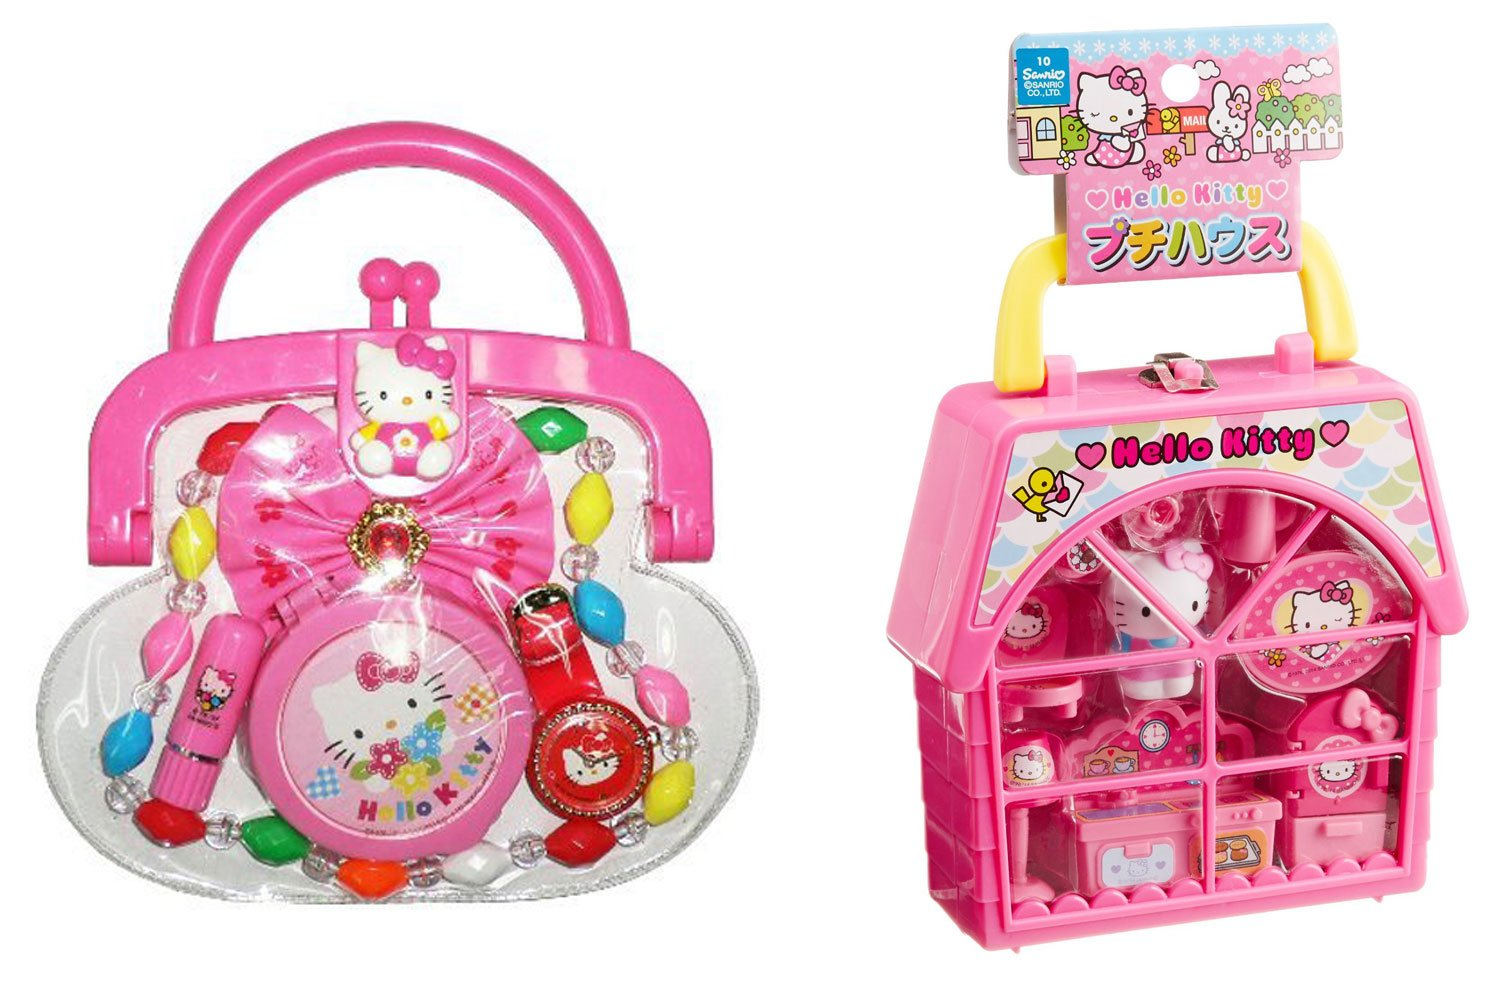 Hello Kitty 2 Sets Petite House and Purse with Accessories (Japan Import)